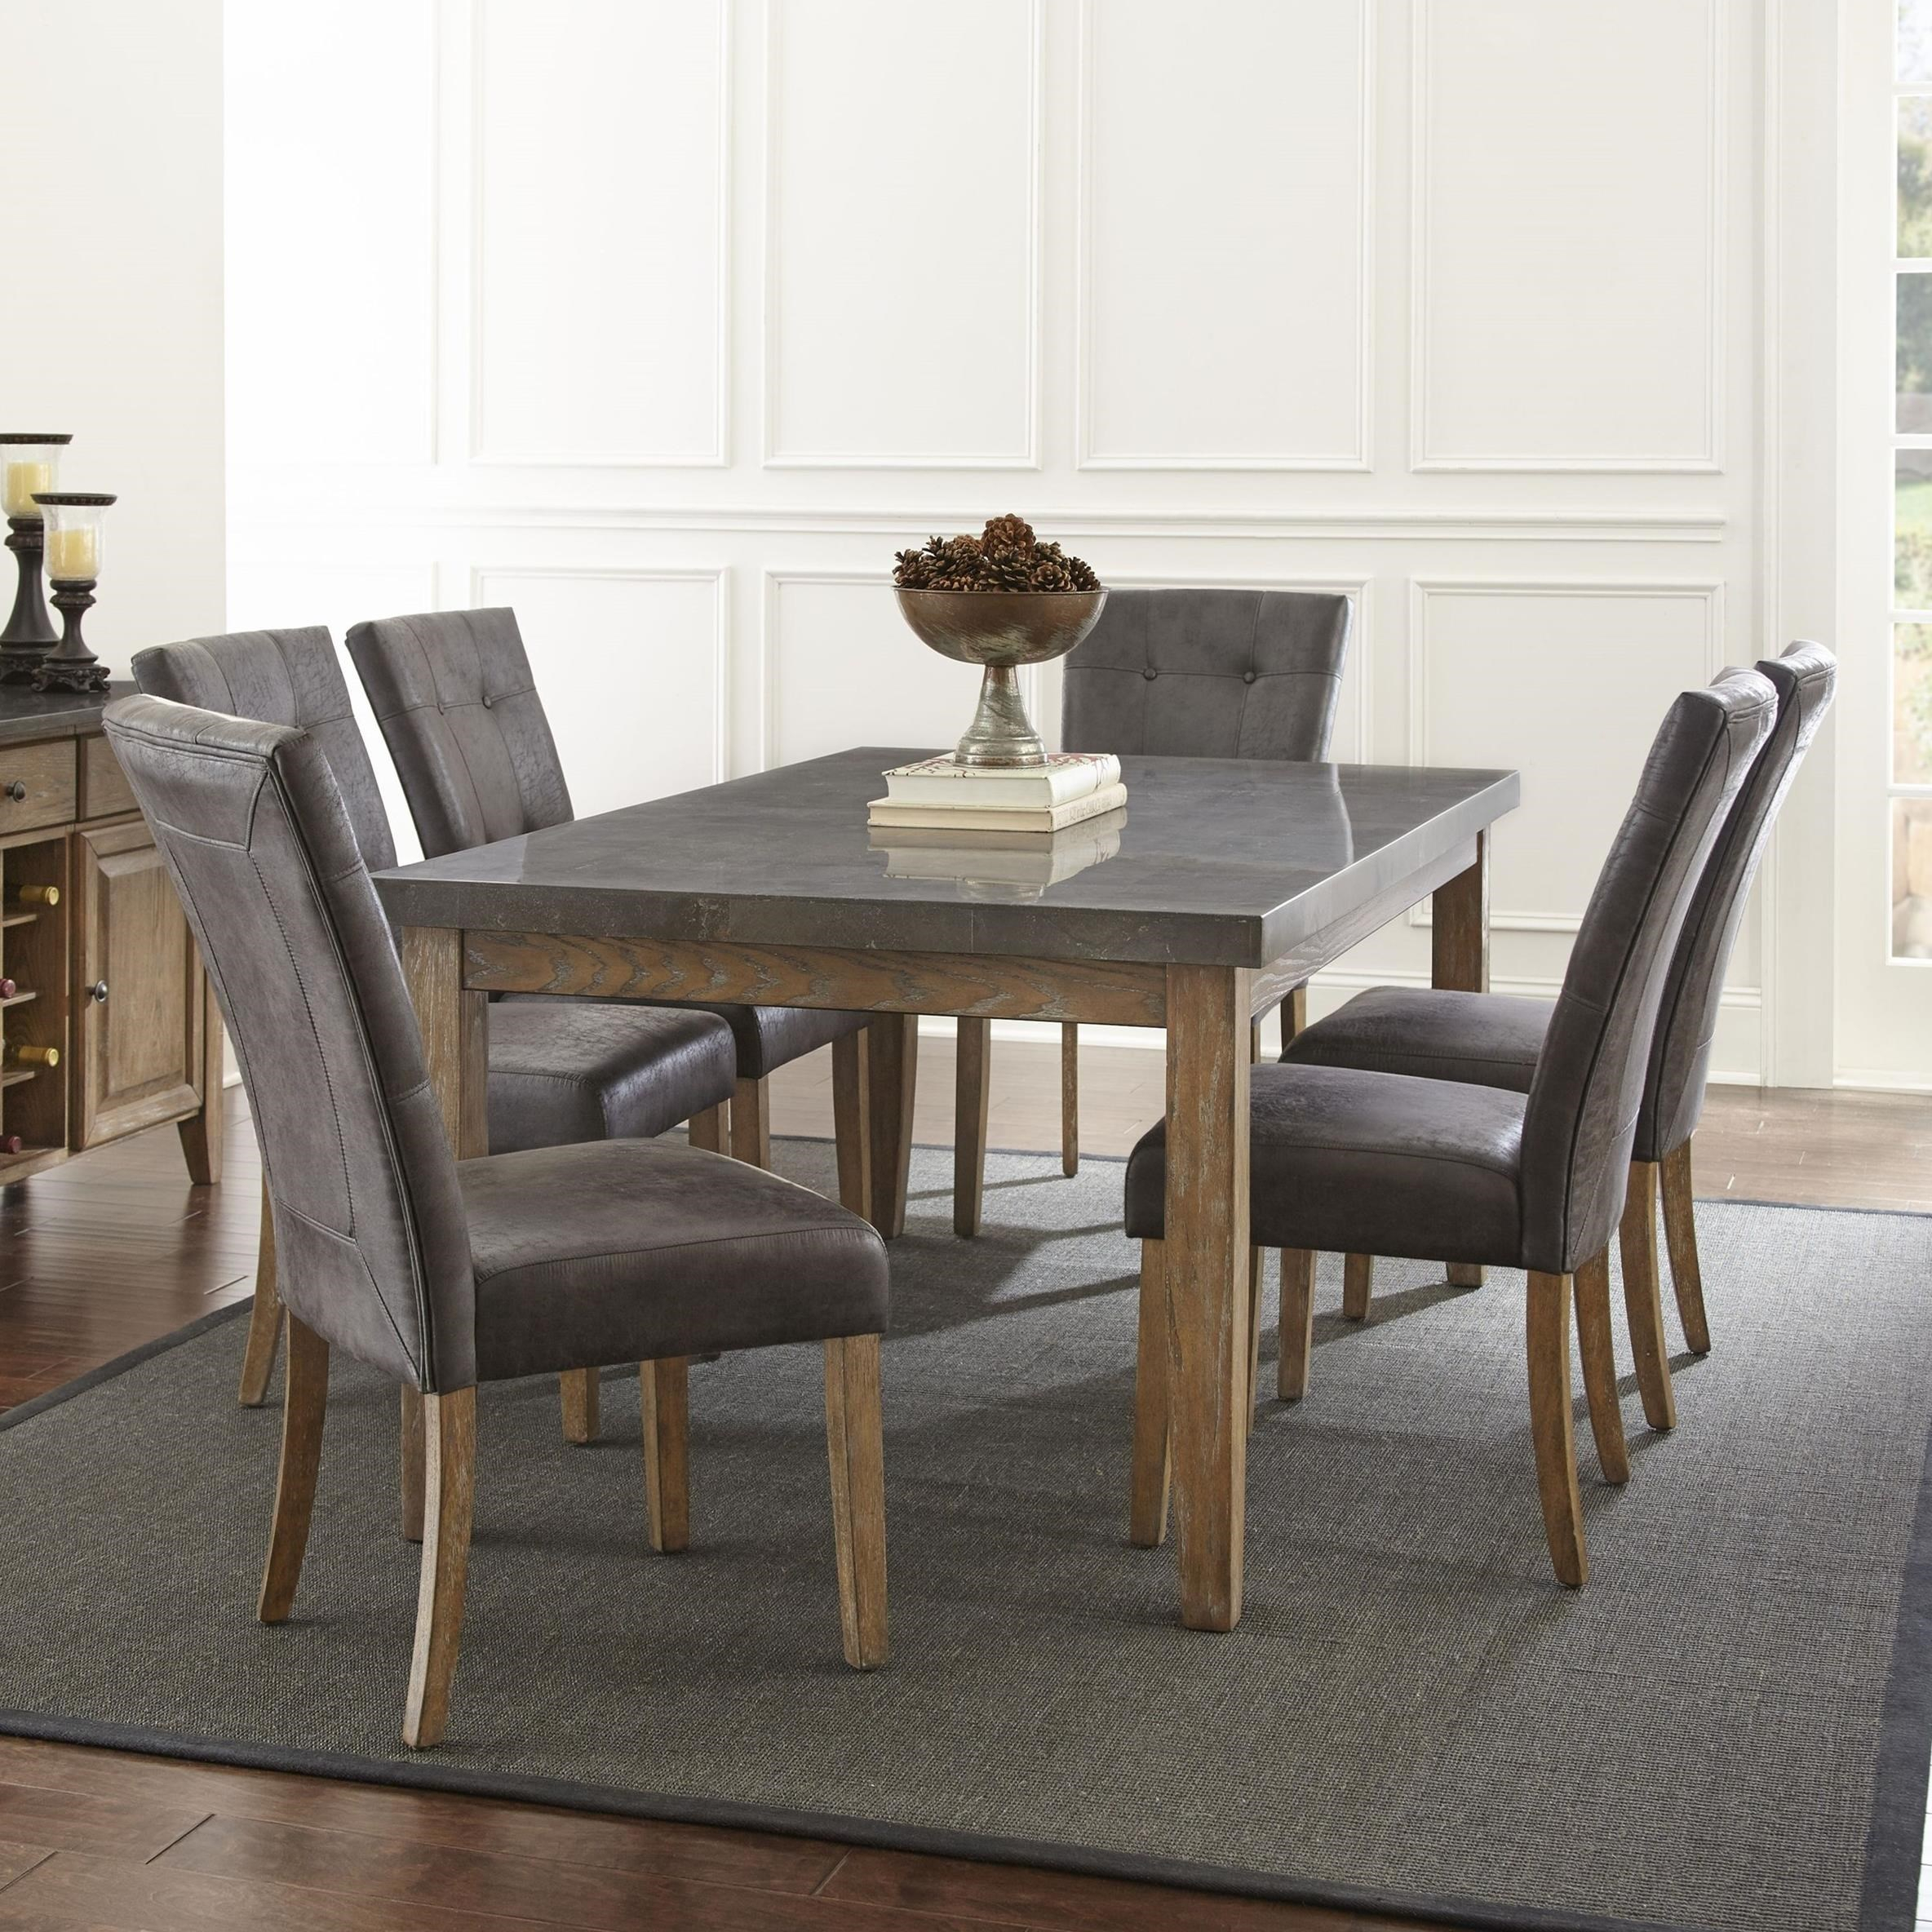 Inspiration about Debby Small Space 3 Piece Dining Sets With Fashionable Steve Silver Debby 7 Piece Transitional Table And Chair Set With (#19 of 20)